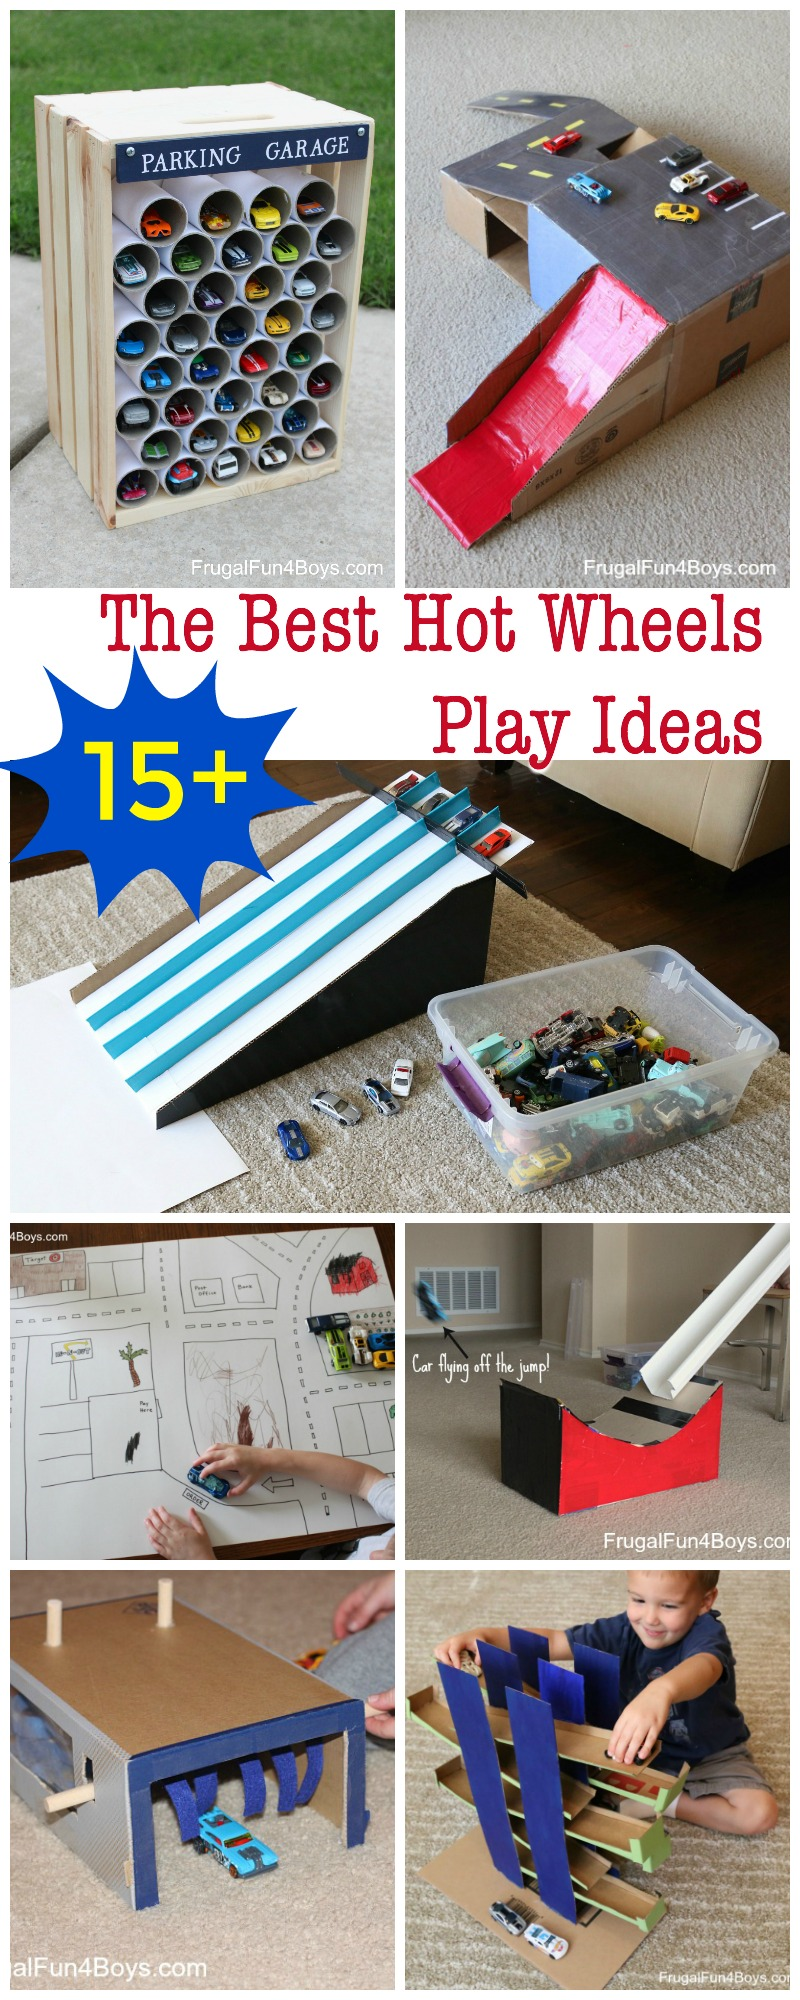 The Best Projects to Make for Hot Wheels Cars